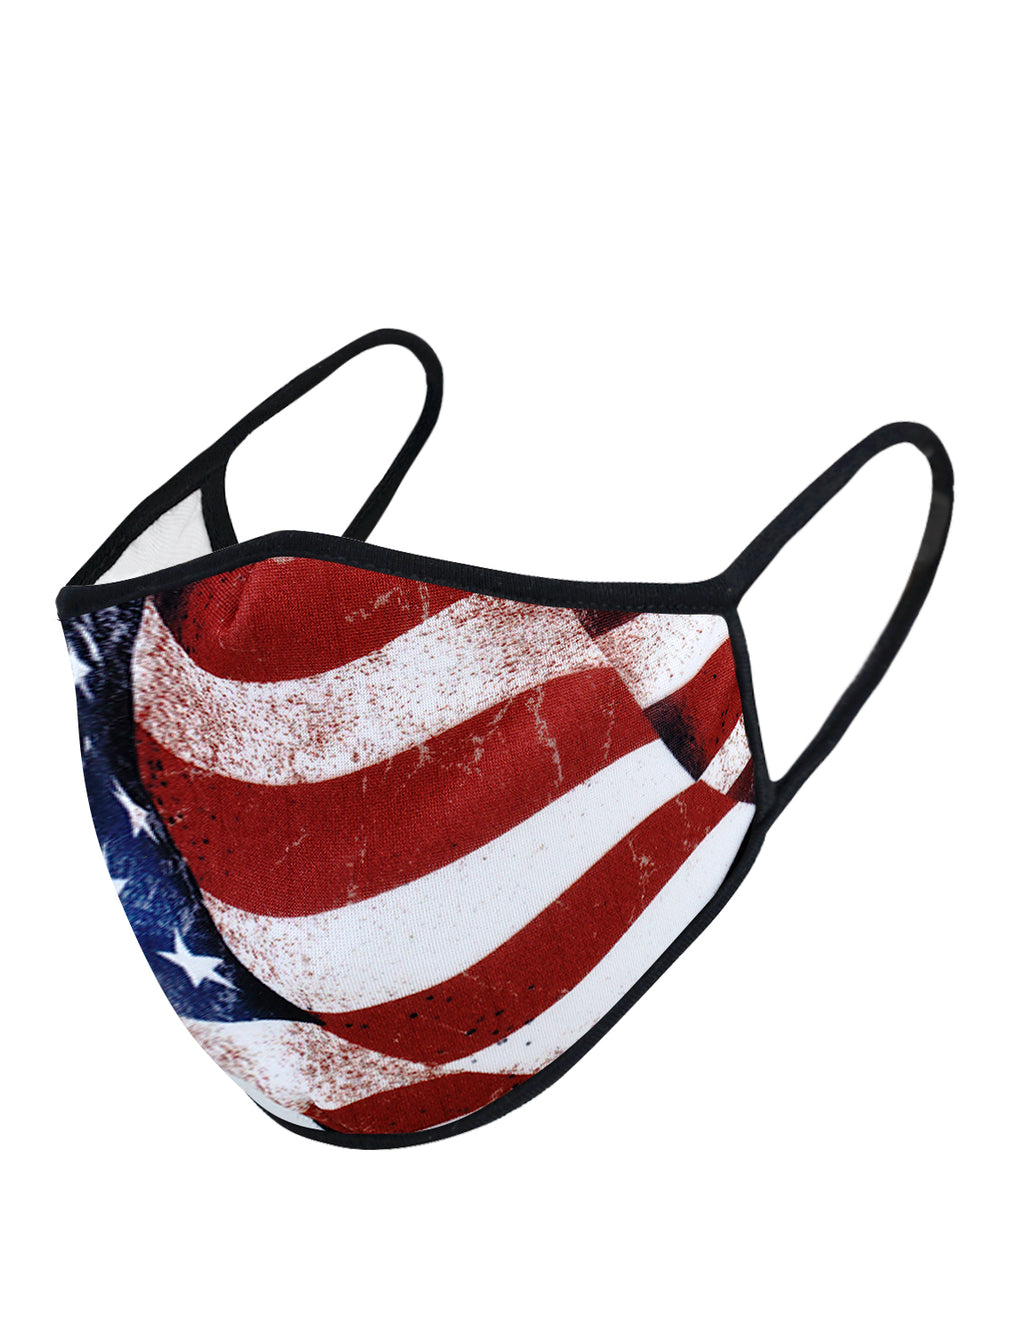 urban x apparel, urban x clothing, urbanxapparel, urbanxclothing, wholesale, women clothing, bohemian, free people, free spirit, young contemporary, fashion trend, fashion style, fashion 2019,RETAIL, American Flag Print Washable and Reusable Fashion Face Mask, URBAN X APPAREL